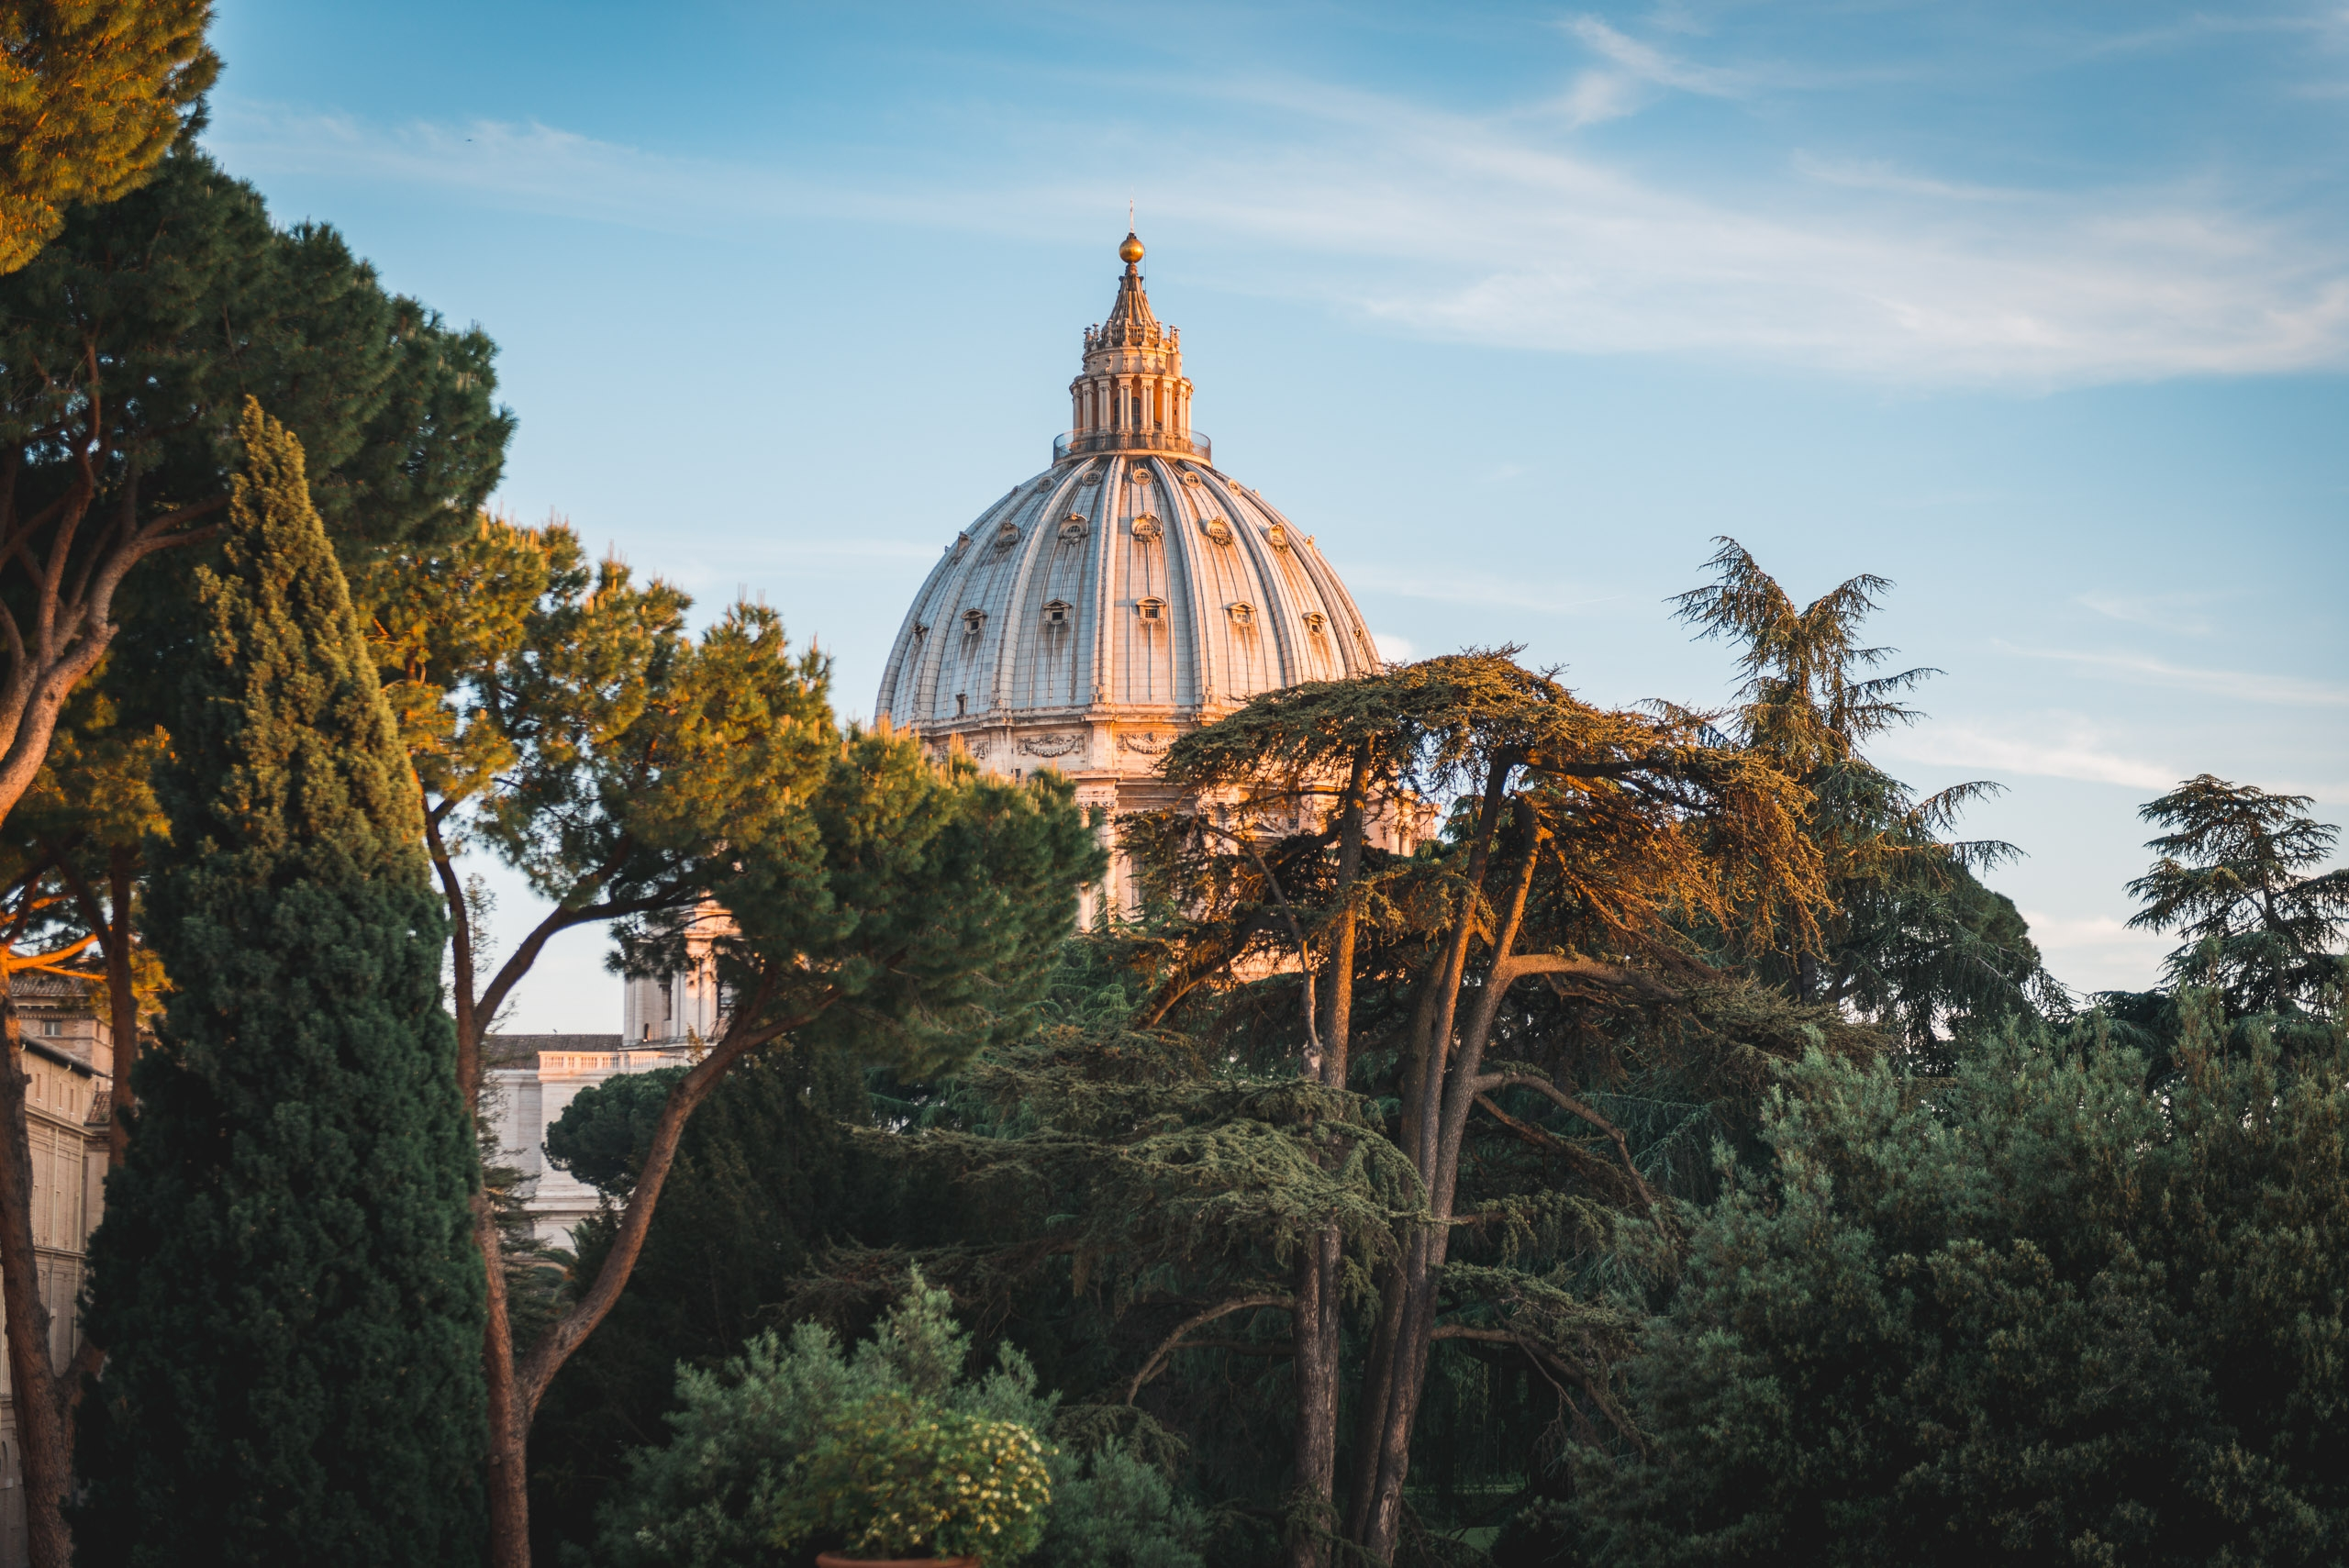 The Dome of St Peters Basilica